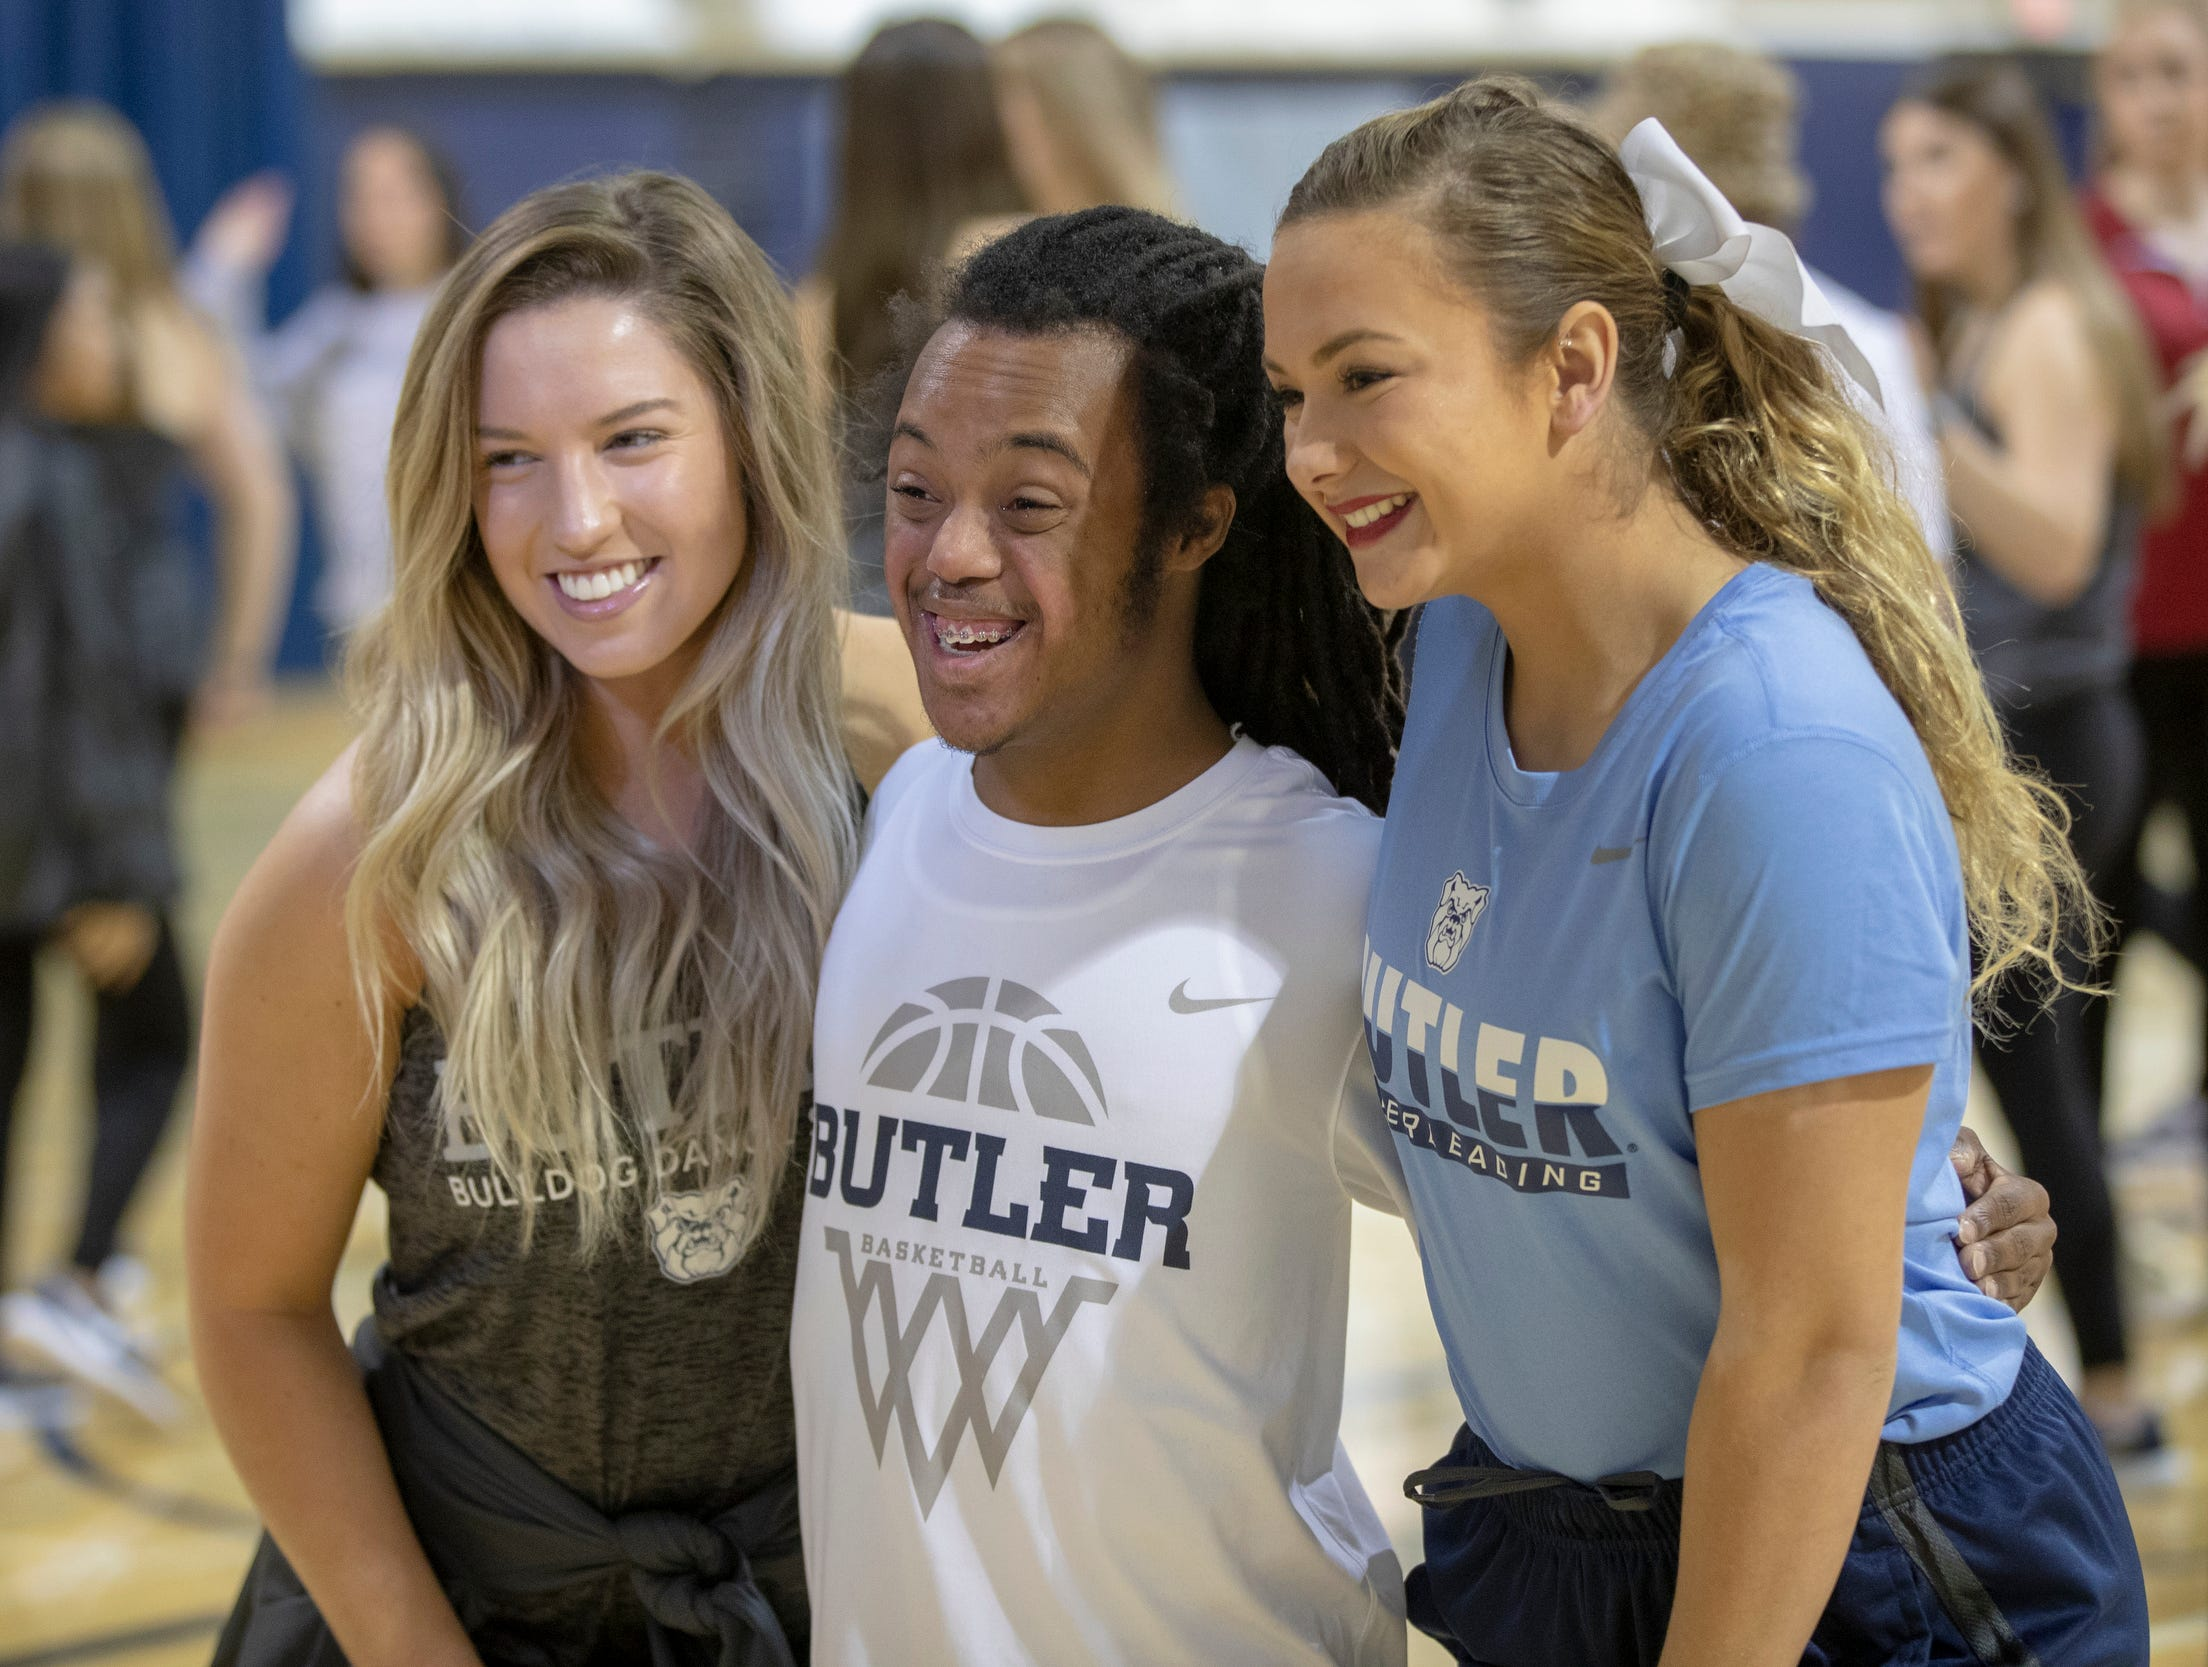 Evan Guess (middle), poses for a photo with dancer Cassidy Turkovich (left), and cheerleader Emma Pippen, after they rehearse for a special halftime performance during the Butler women's basketball game at Hinkle Fieldhouse, Indianapolis, Sunday, Dec. 2, 2018. Butler cheer and dance groups paired up with physical therapy students from Indiana University to teach young people with special needs a routine in preparation for a special performance during the afternoon's halftime show.